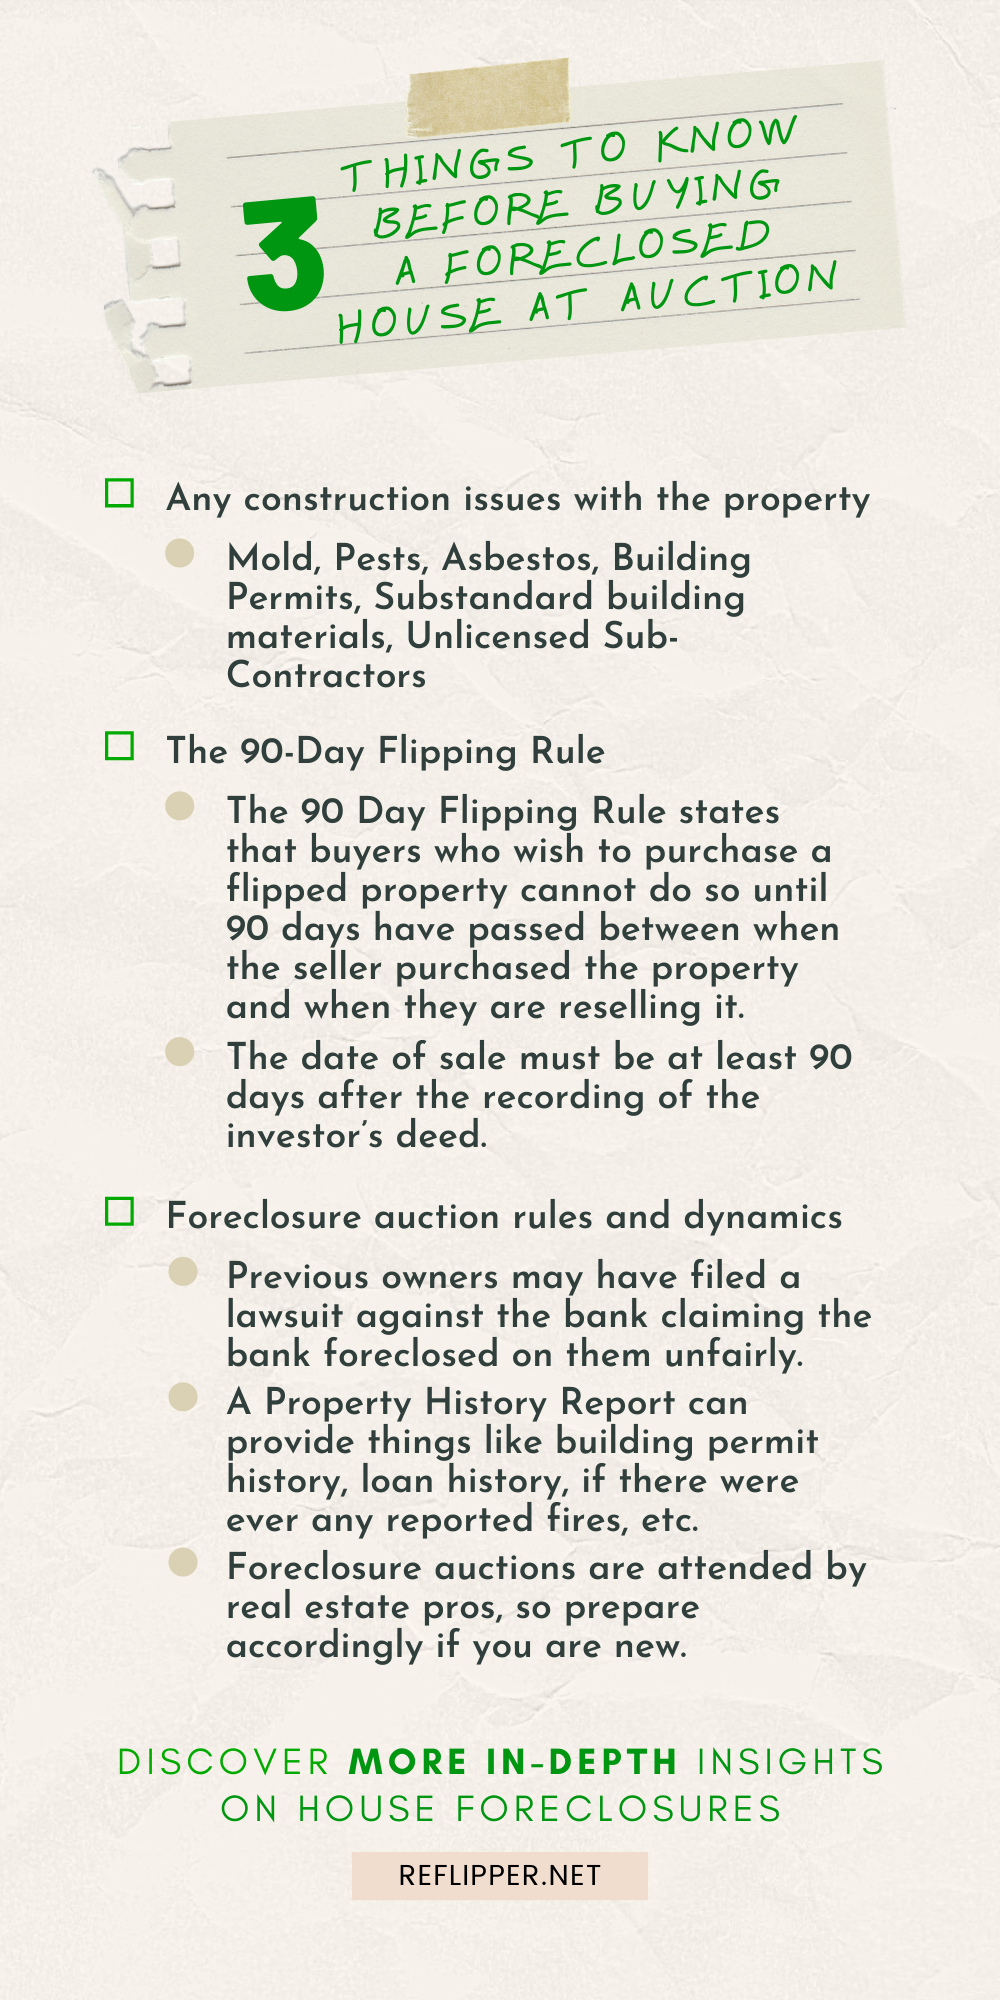 An infographic describing 3 things to know before buying a foreclosed house at auction.